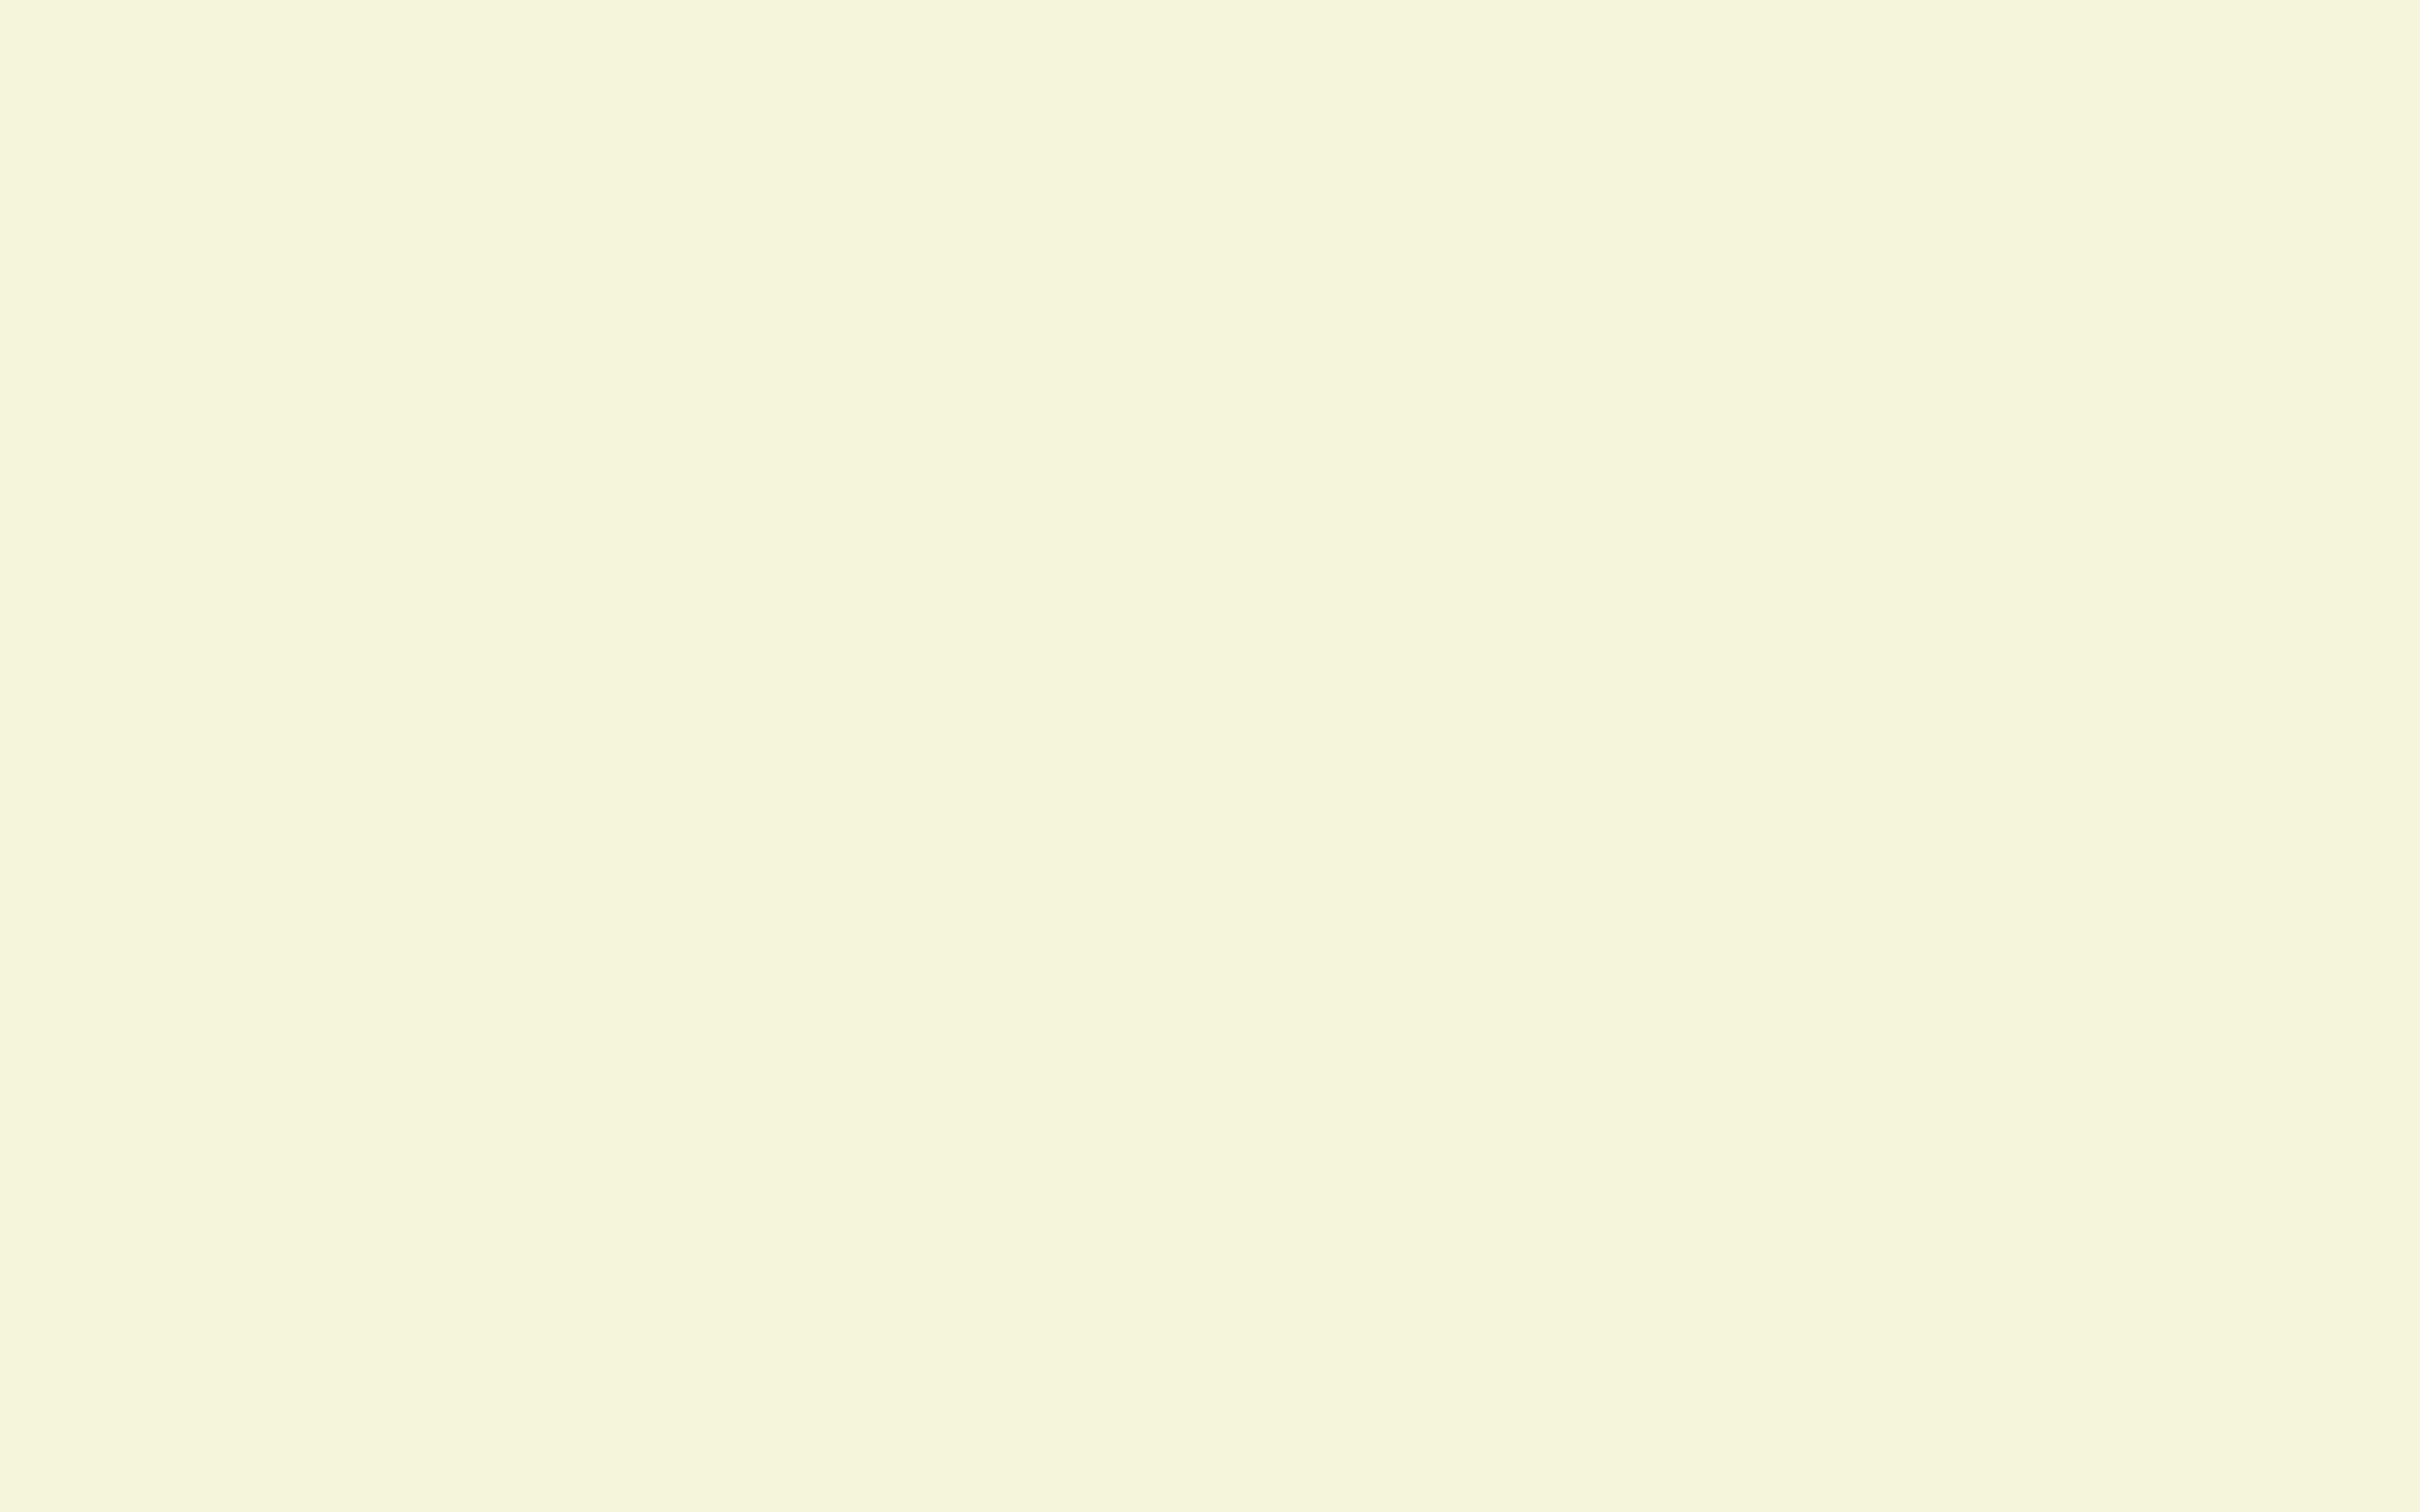 2560x1600 Beige Solid Color Background